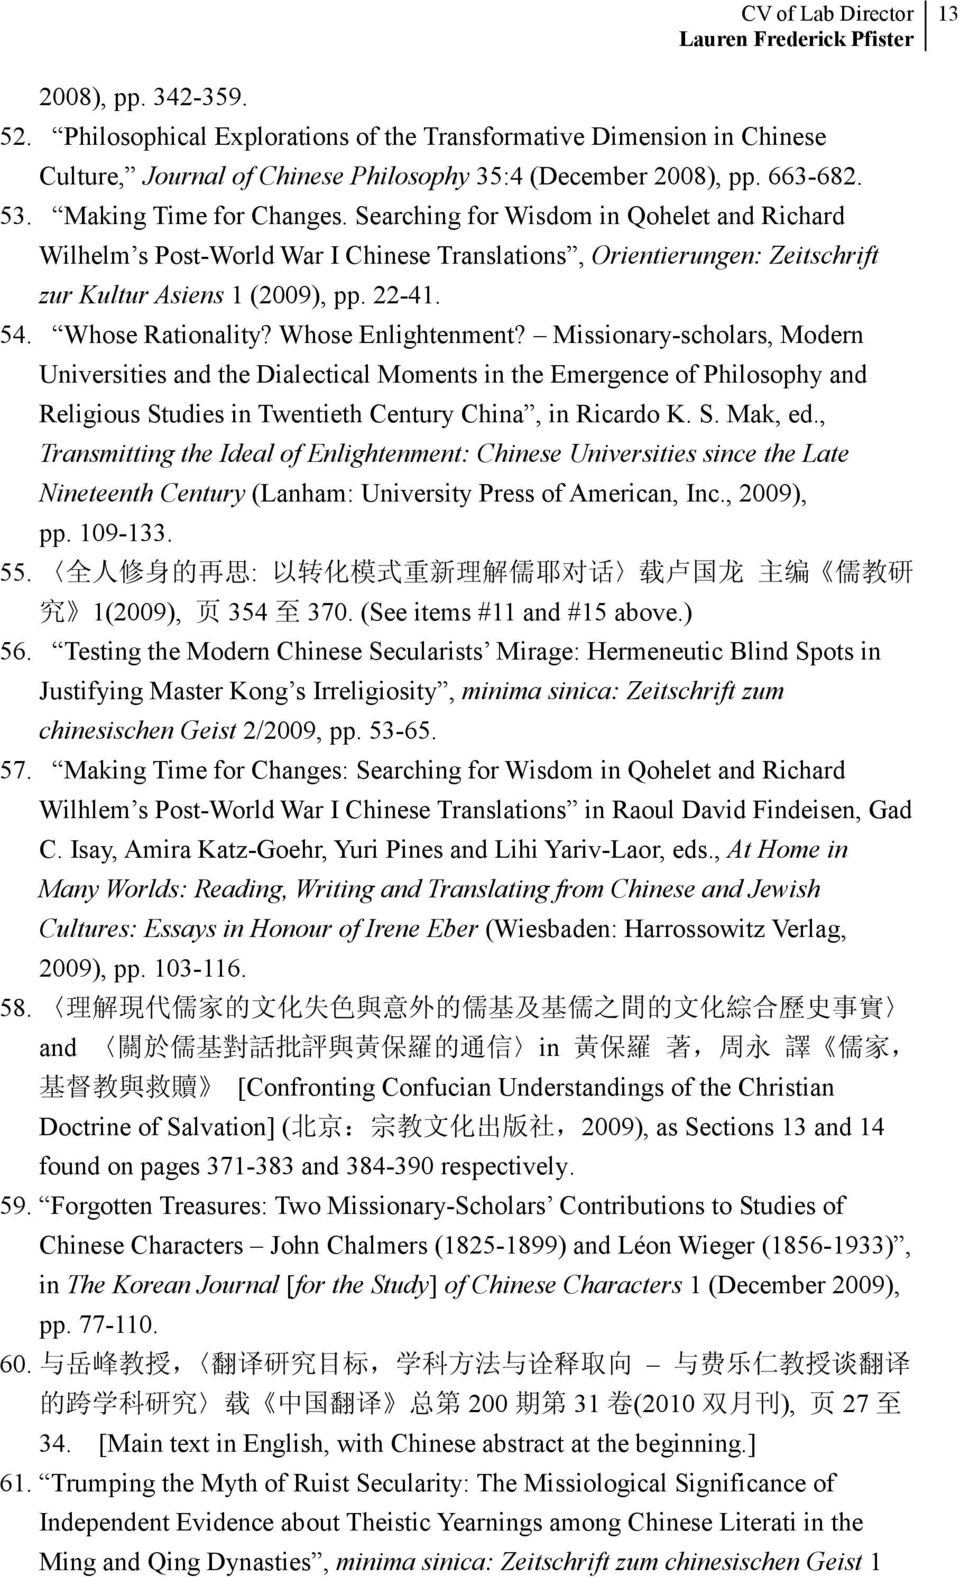 Whose Enlightenment? Missionary-scholars, Modern Universities and the Dialectical Moments in the Emergence of Philosophy and Religious Studies in Twentieth Century China, in Ricardo K. S. Mak, ed.